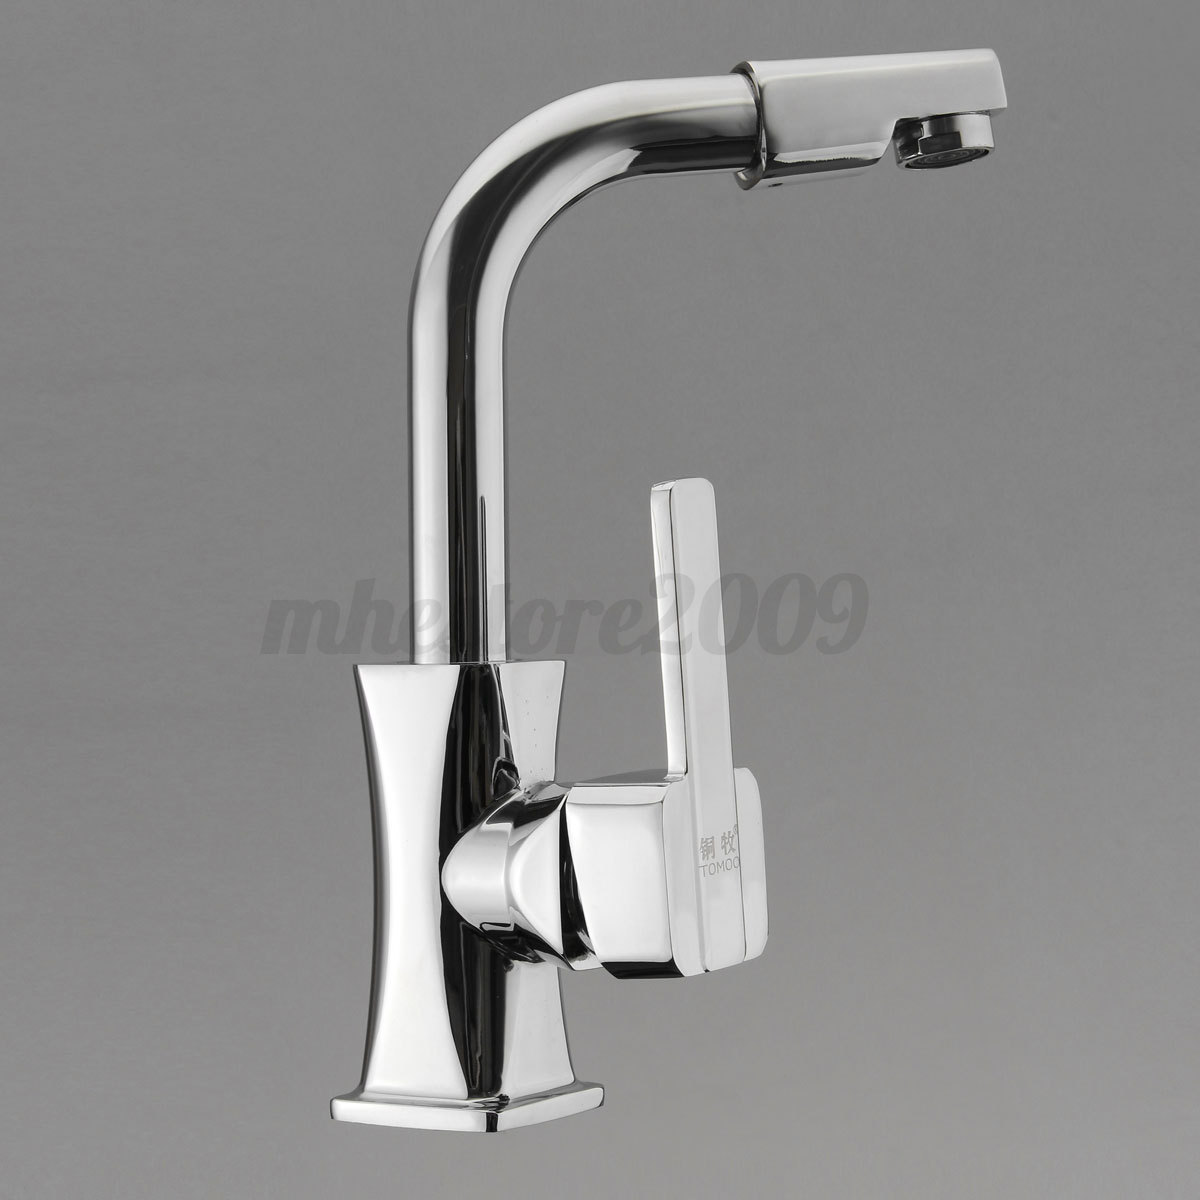 Highest Rated Kitchen Faucets Spring Sink Mixer Tap Kitchen Pull Down Swivel Spray Spout